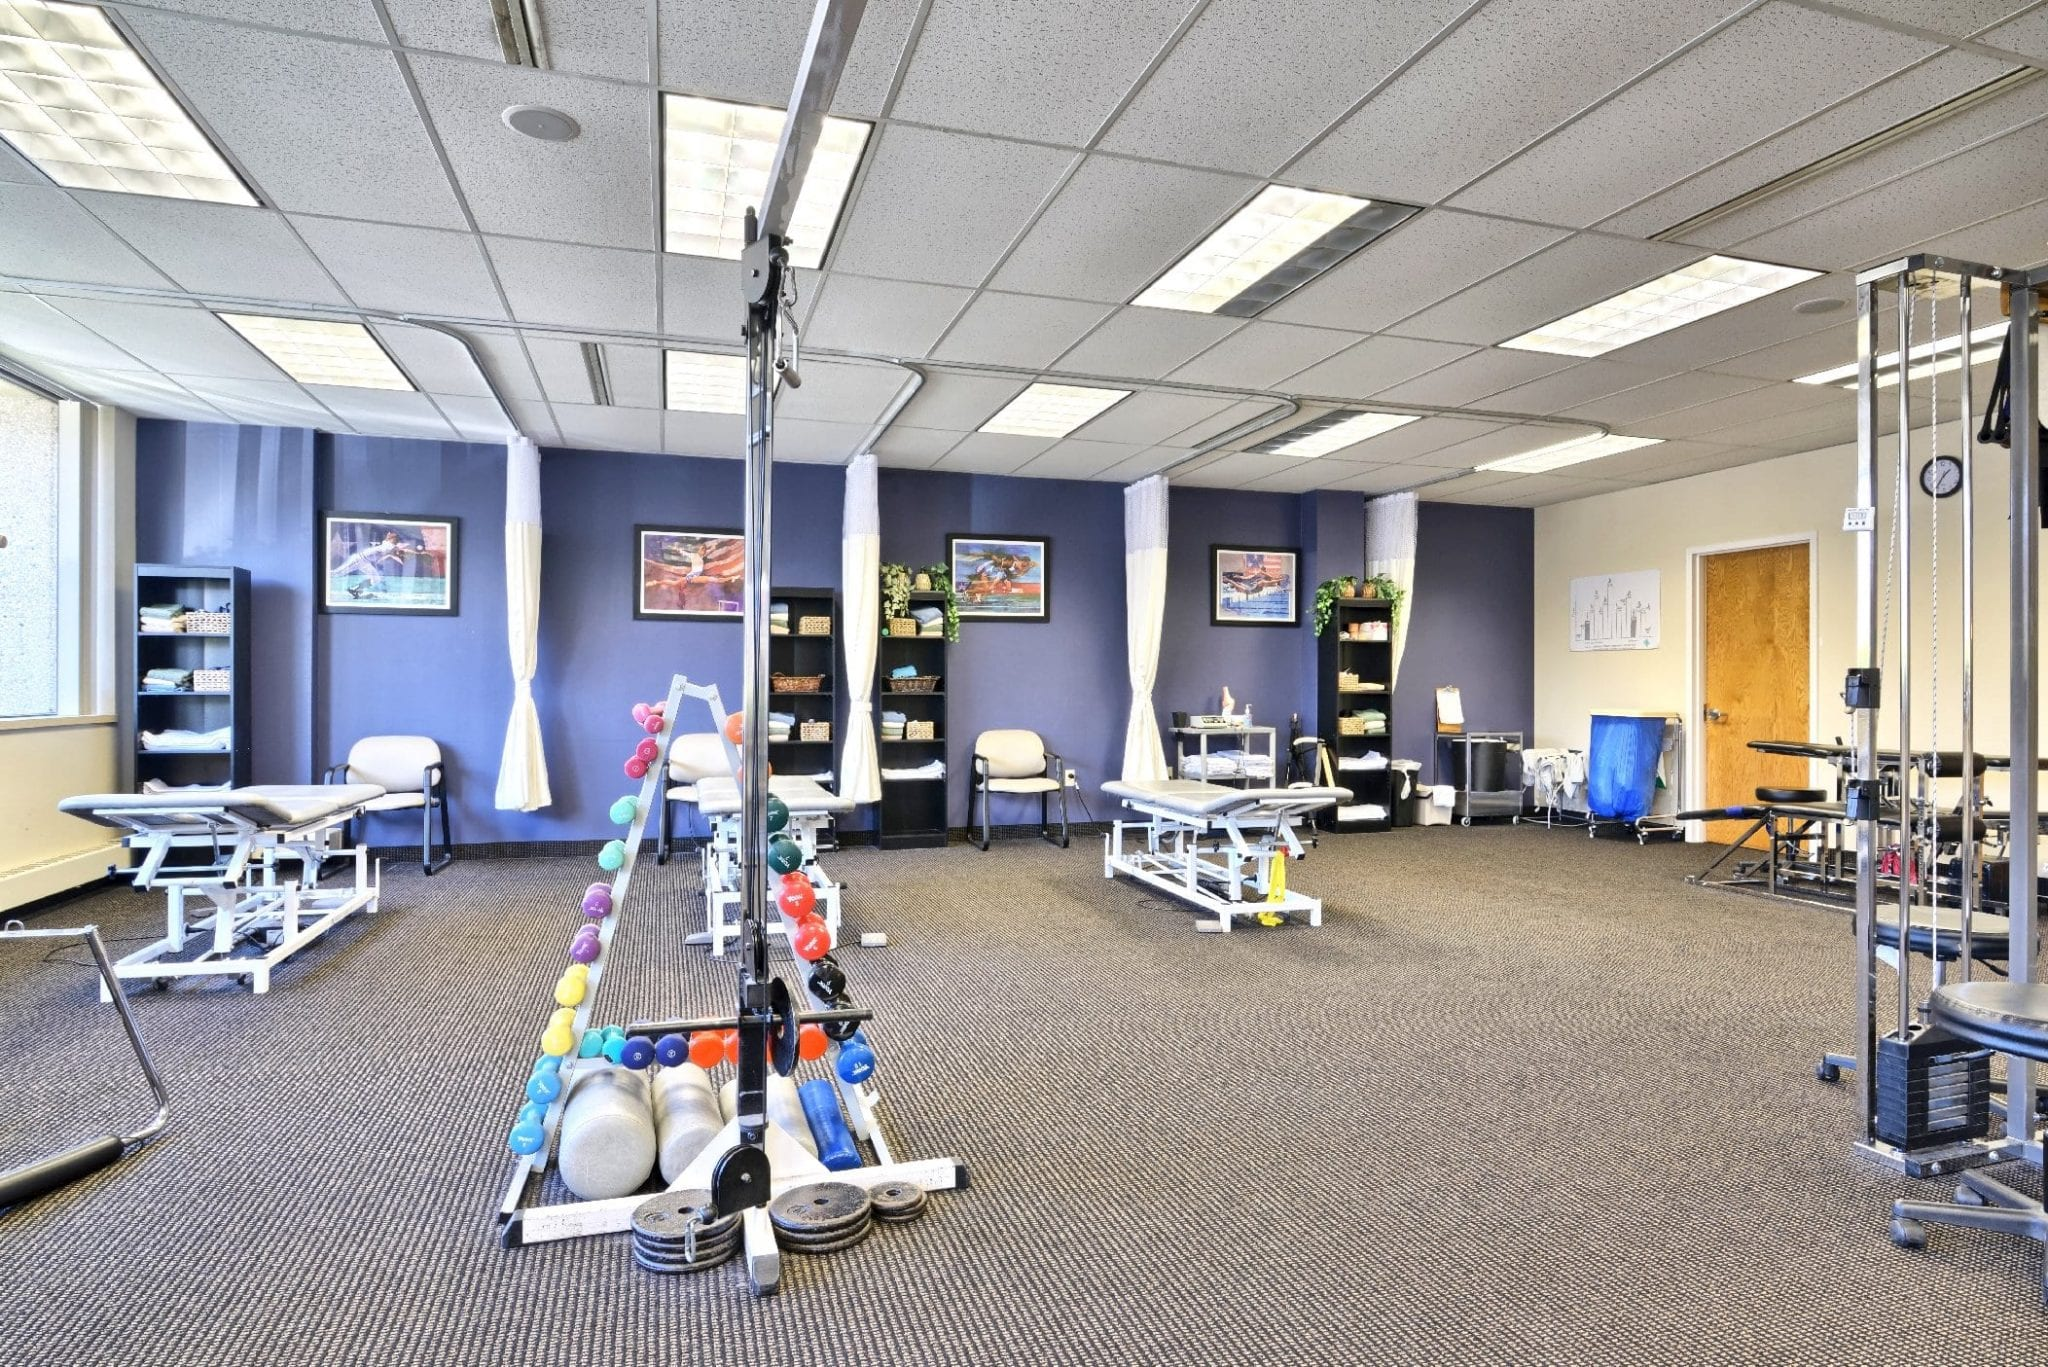 An image of the equipment used in physical therapy at our clinic in Farmington, Connecticut.